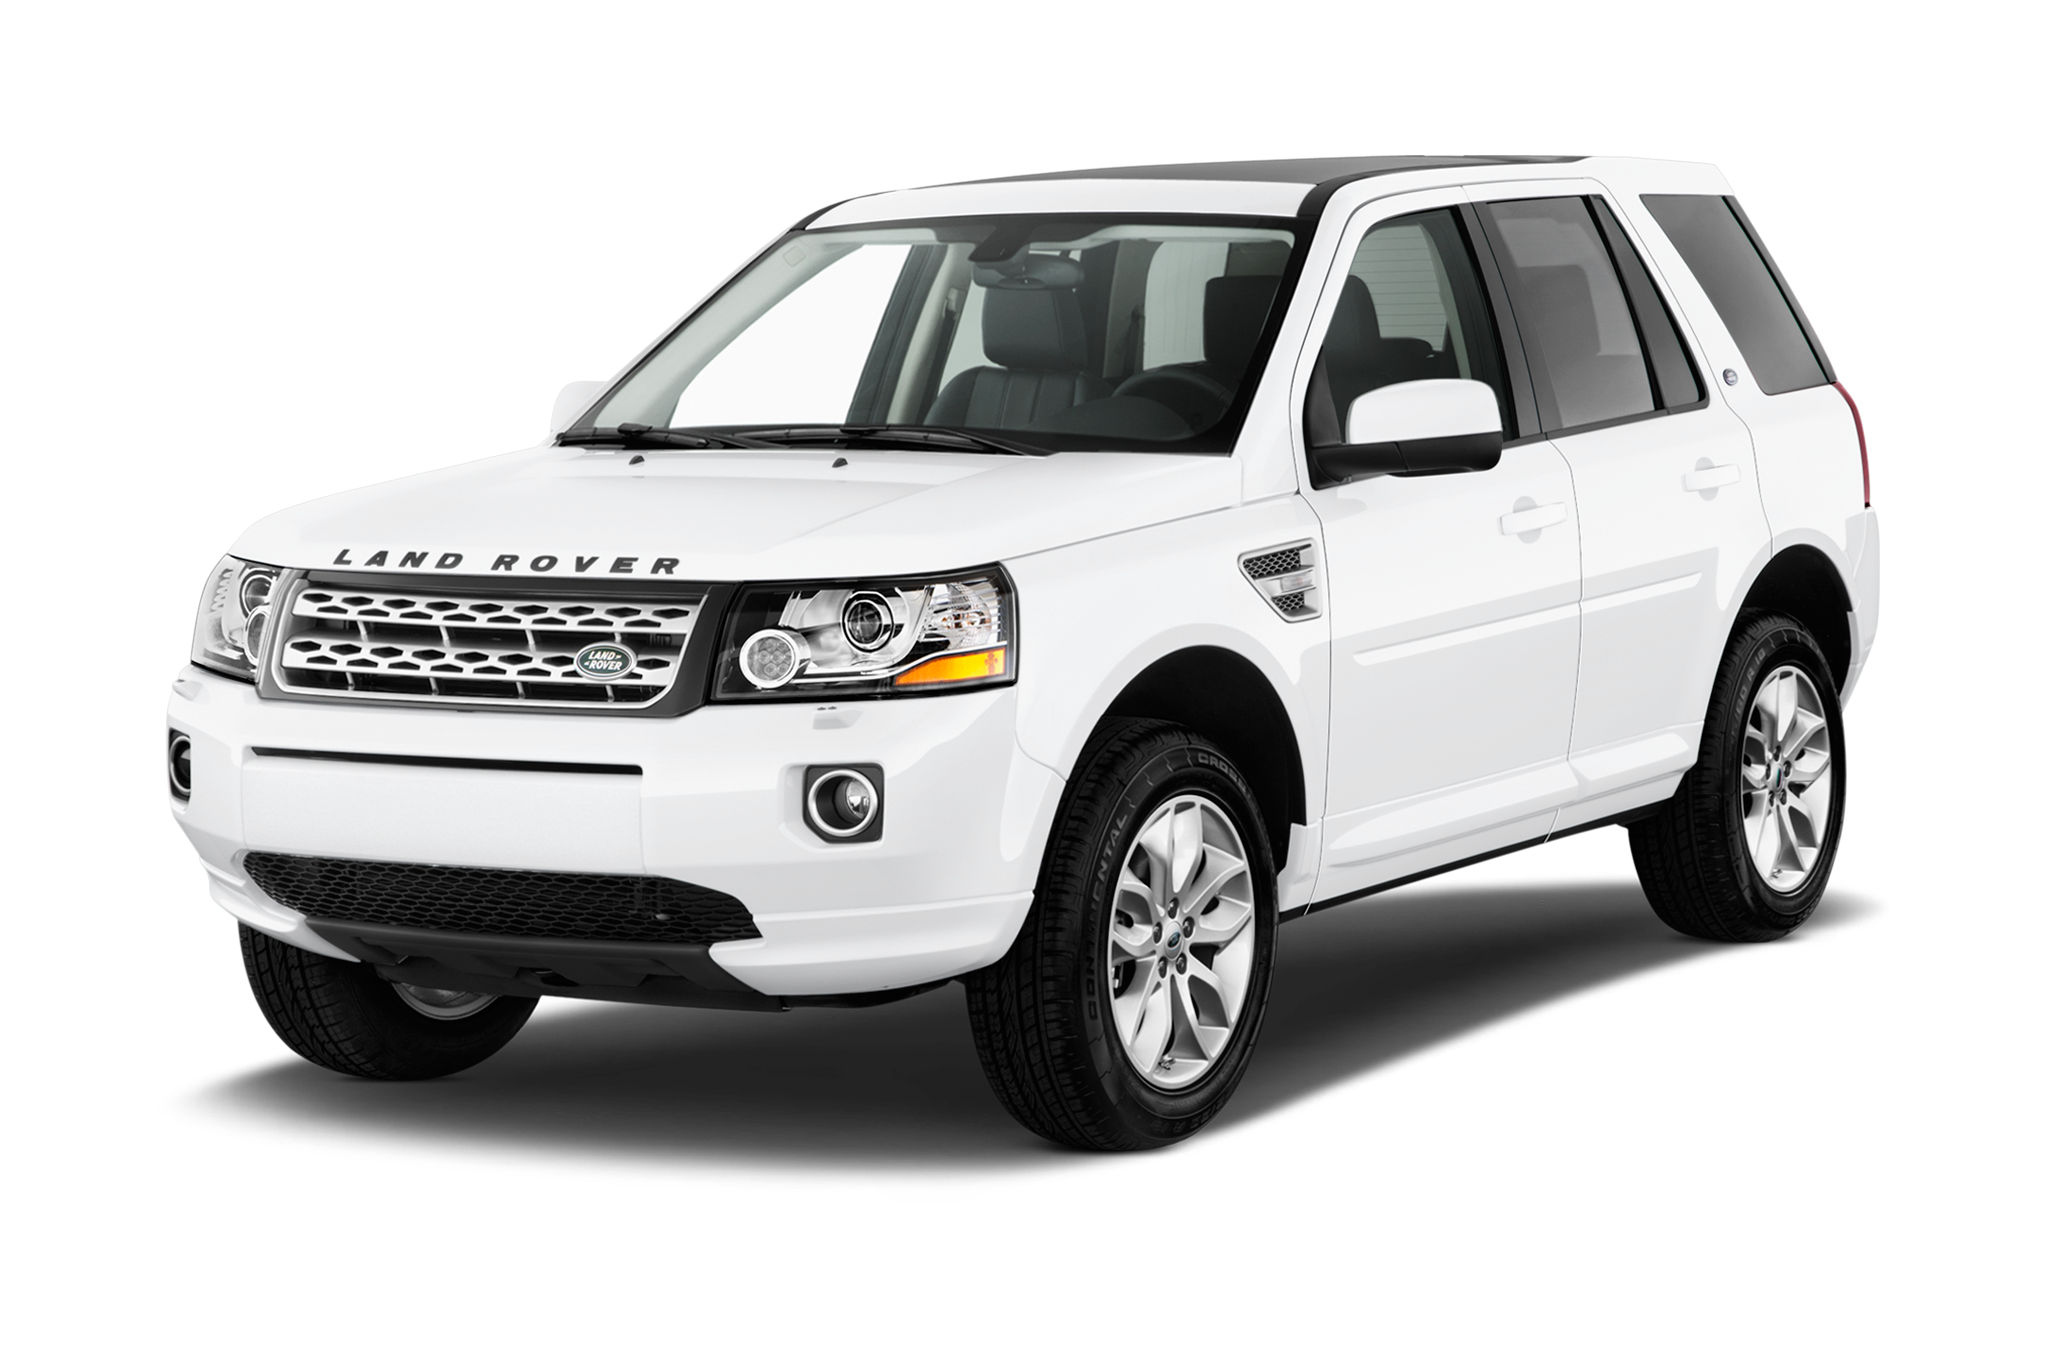 2014 land rover lr2 reviews and rating | motortrend